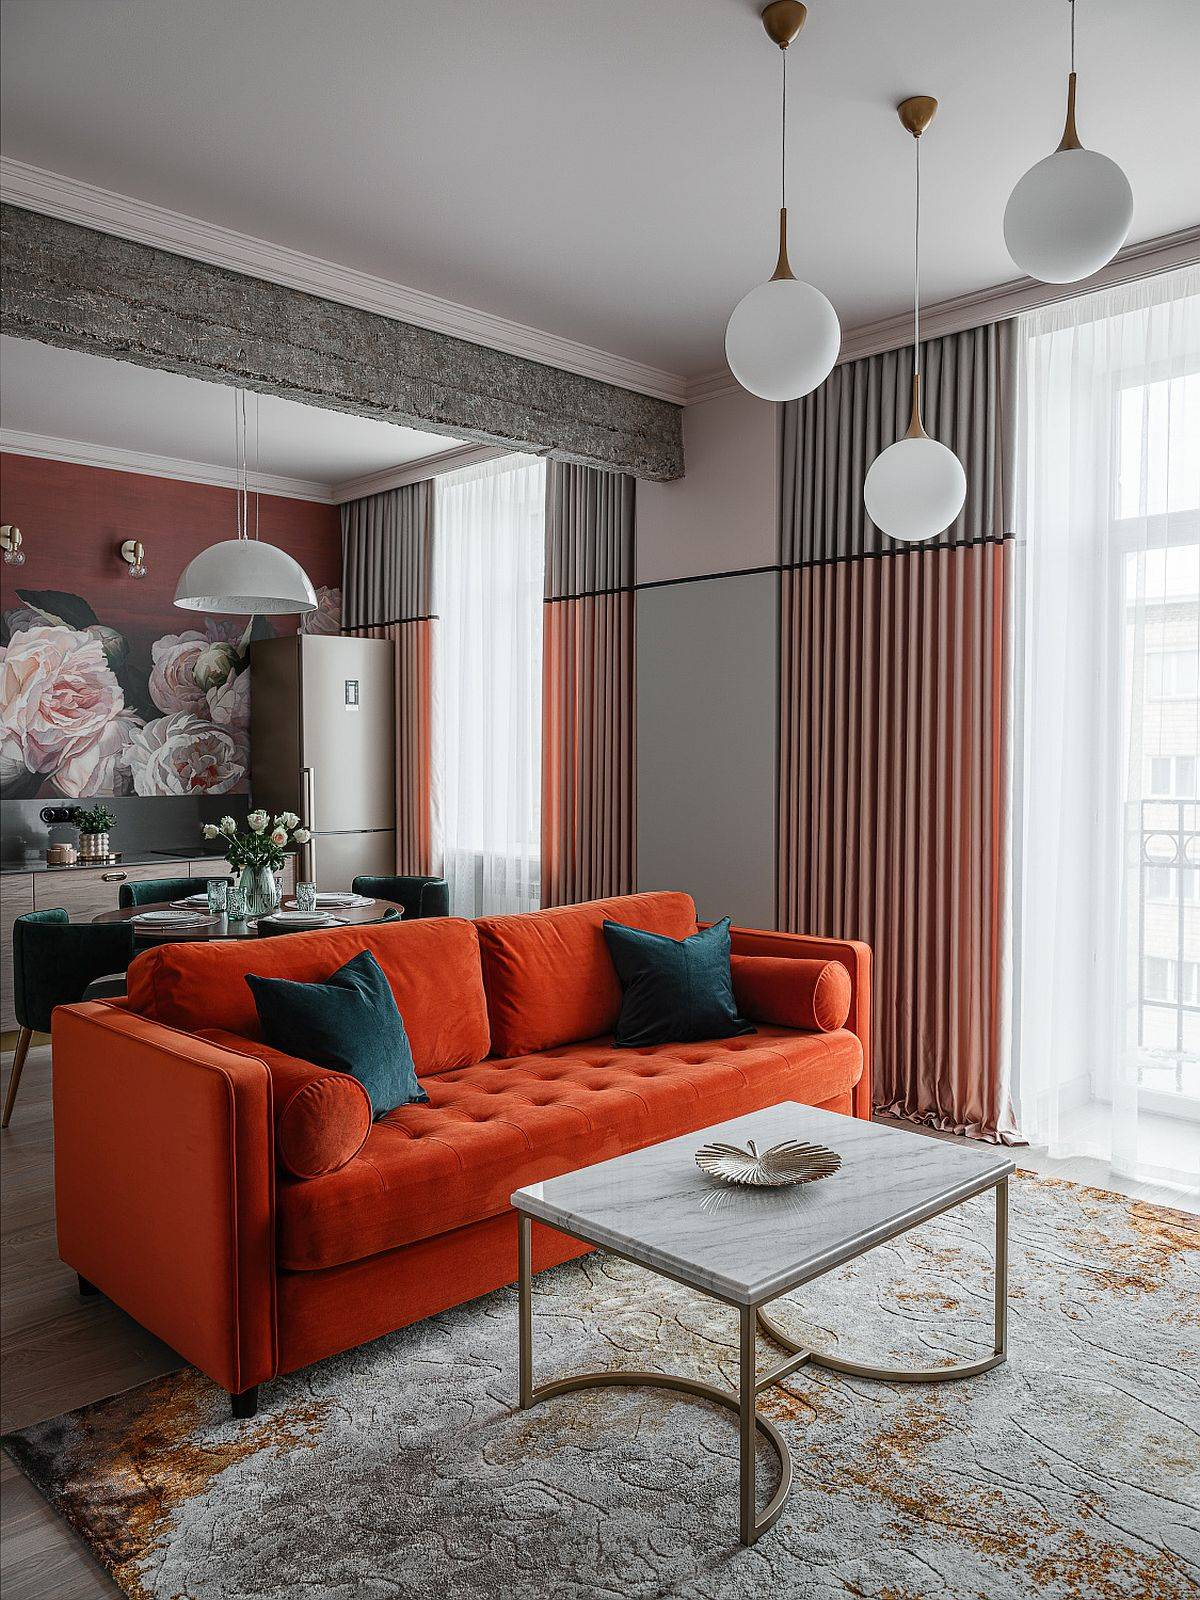 Modern living room with a vibrant orange couch